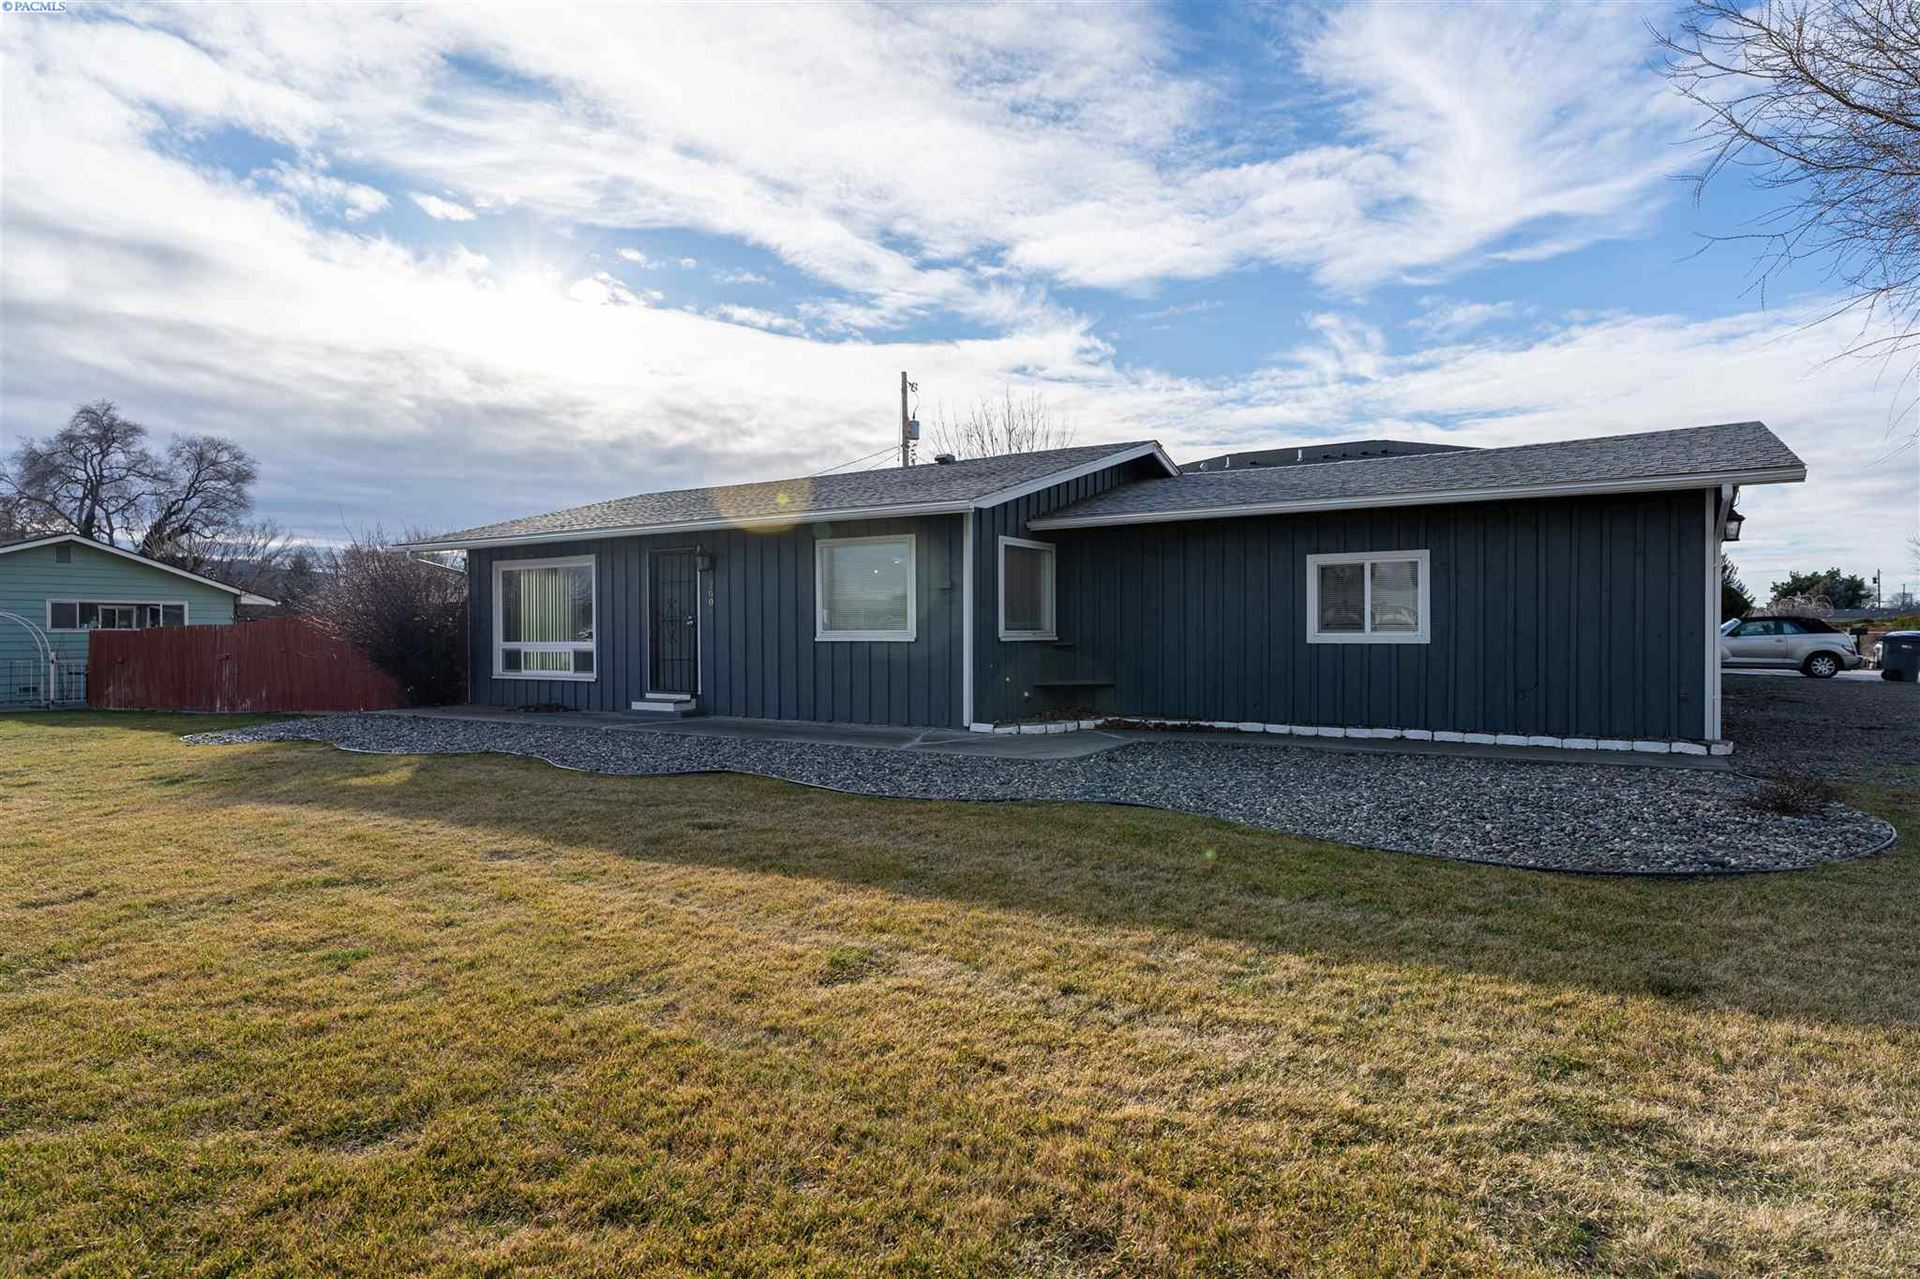 Photo of 2004 S Olympia Street, Kennewick, WA 99337 (MLS # 251160)